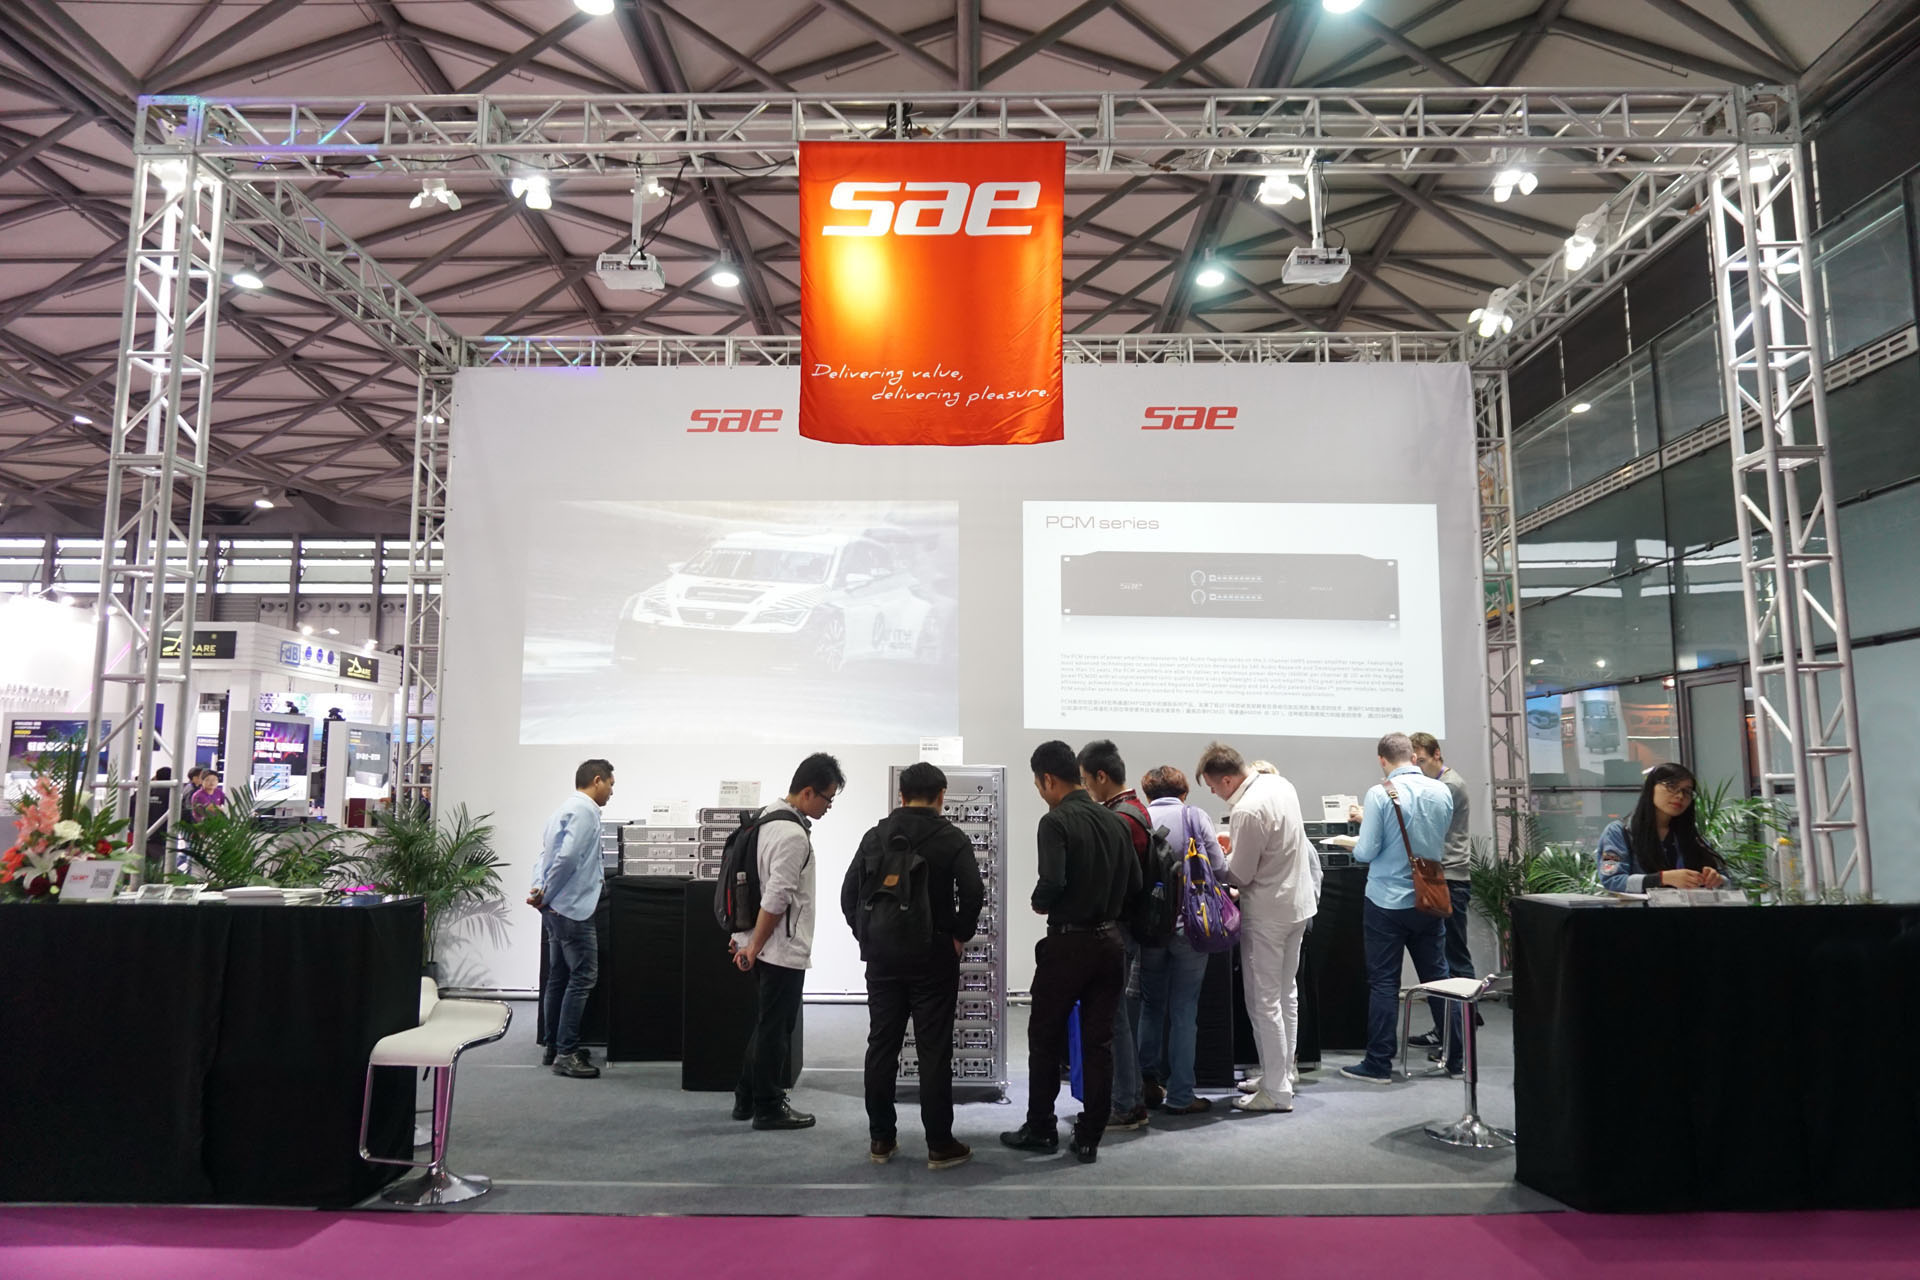 Prolight + Sound ShangHai 2016